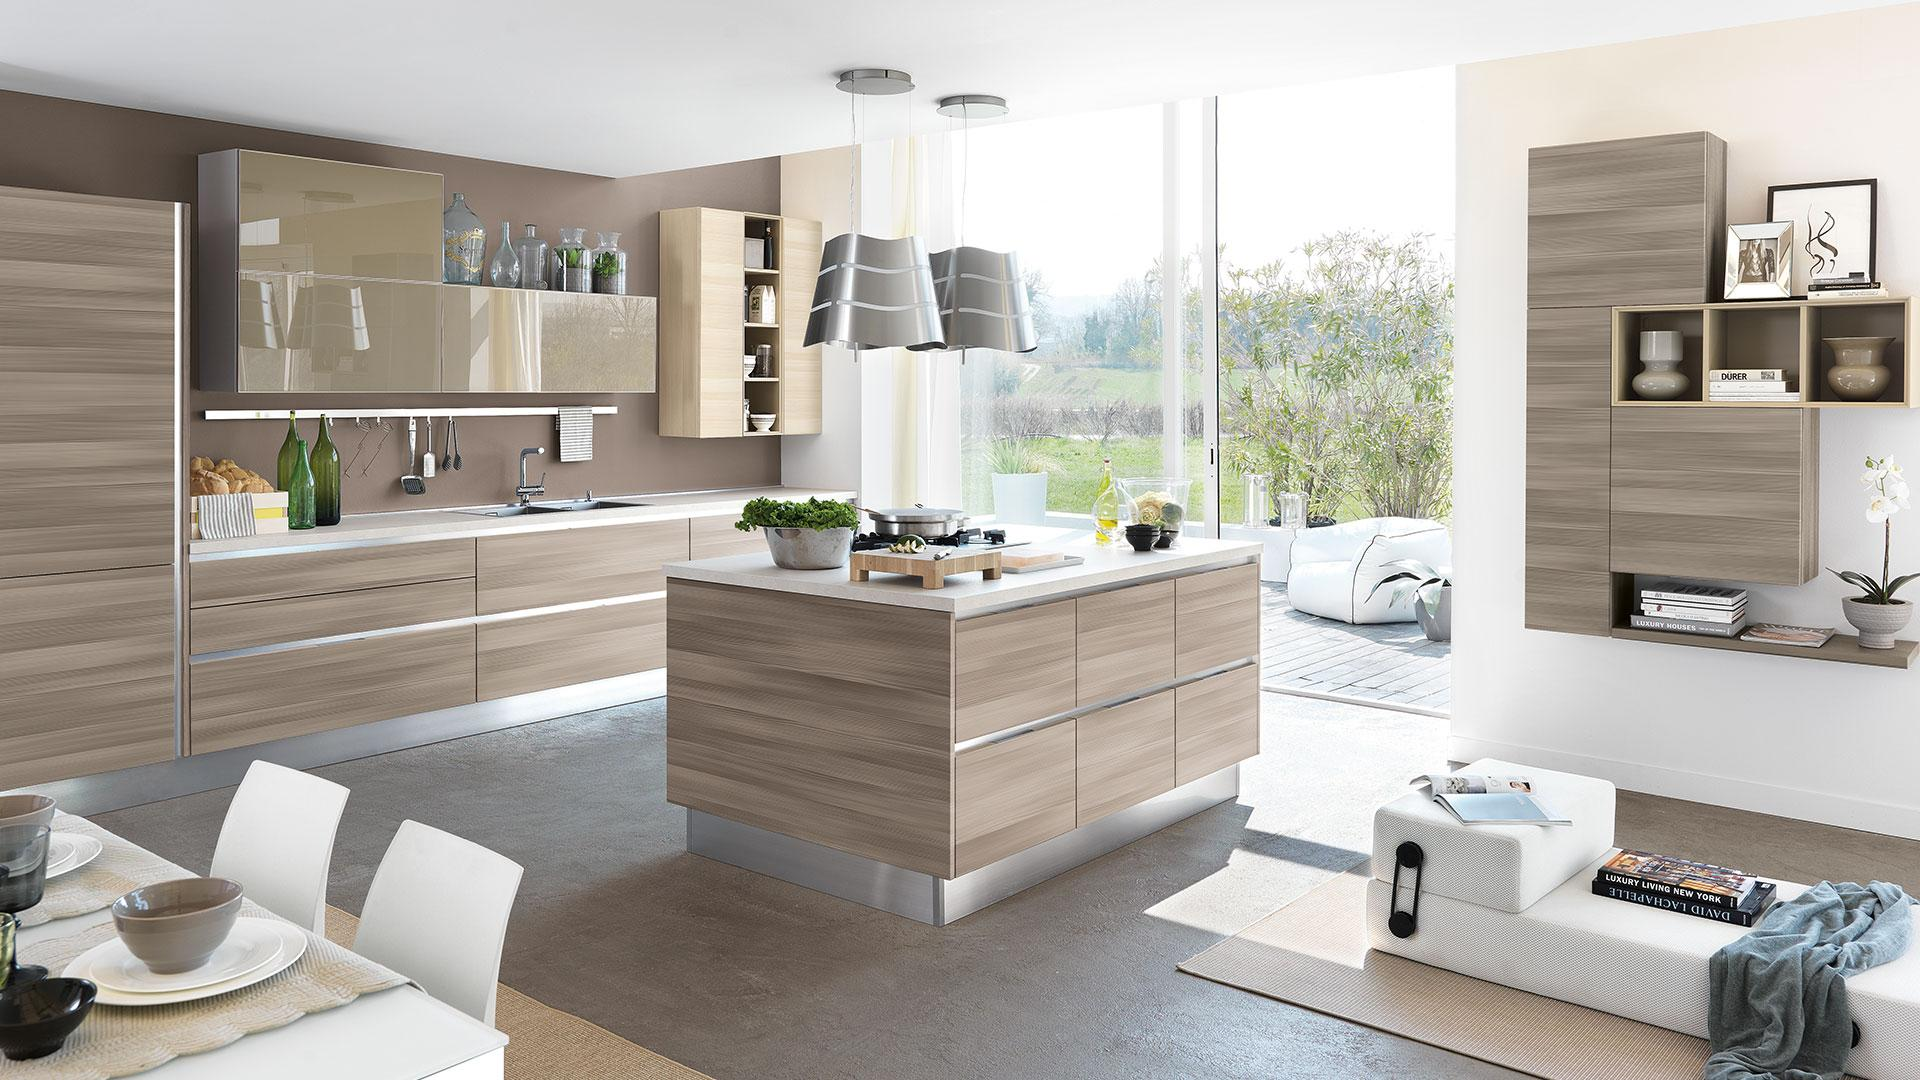 Awesome Cucine Lube Opinioni Images - Flowersplace.us ...